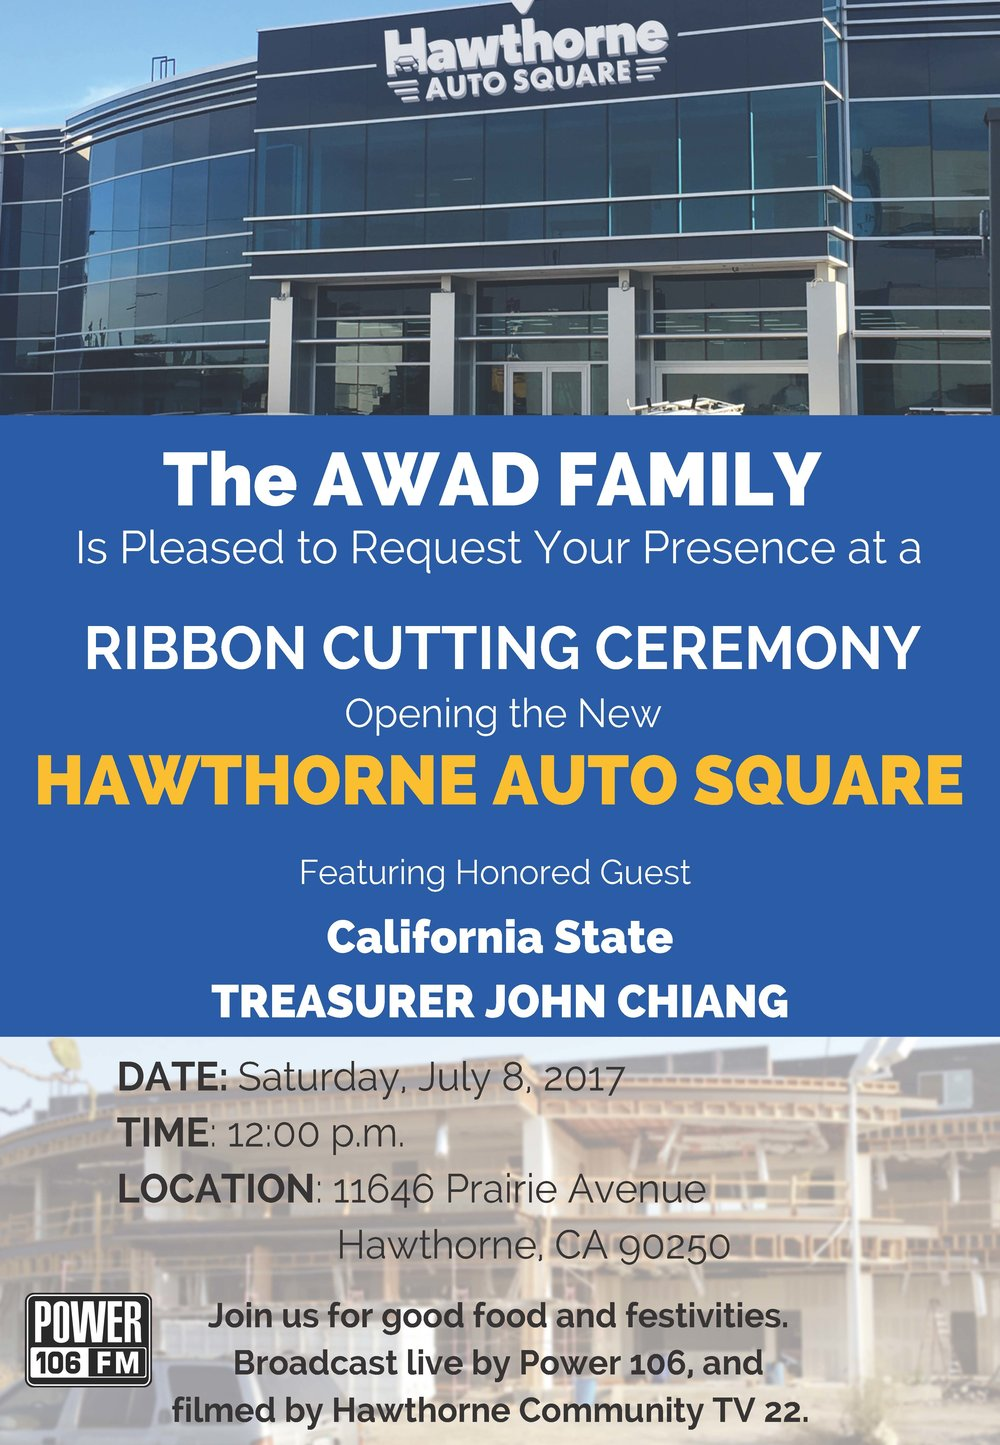 Hawthorne Auto Square Ribbon Cutting